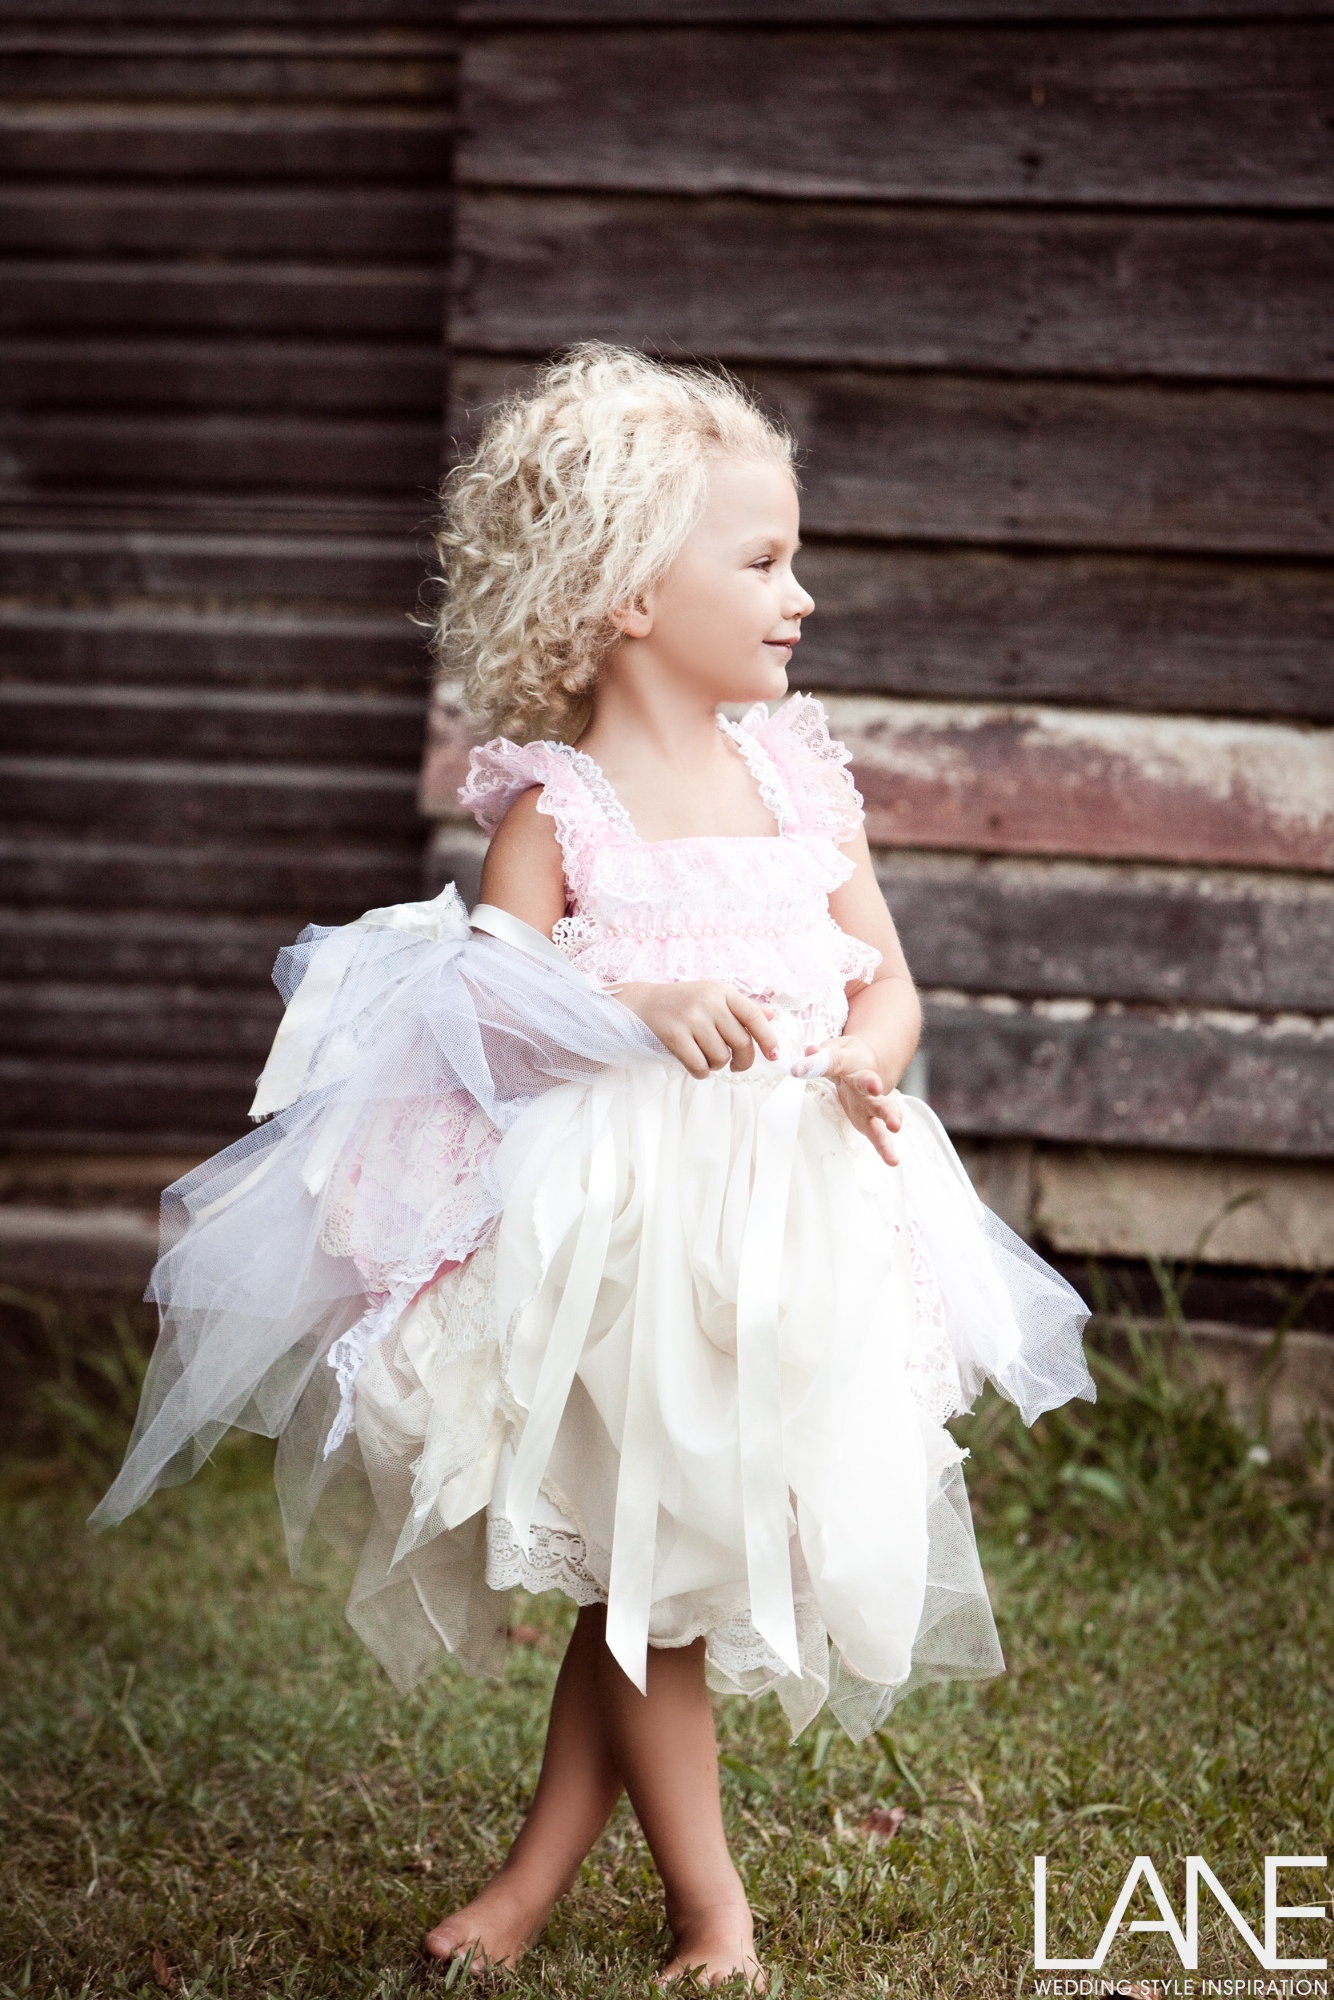 Flower girl dress australia flower girl dresses flower girl dress australia 49 izmirmasajfo Images